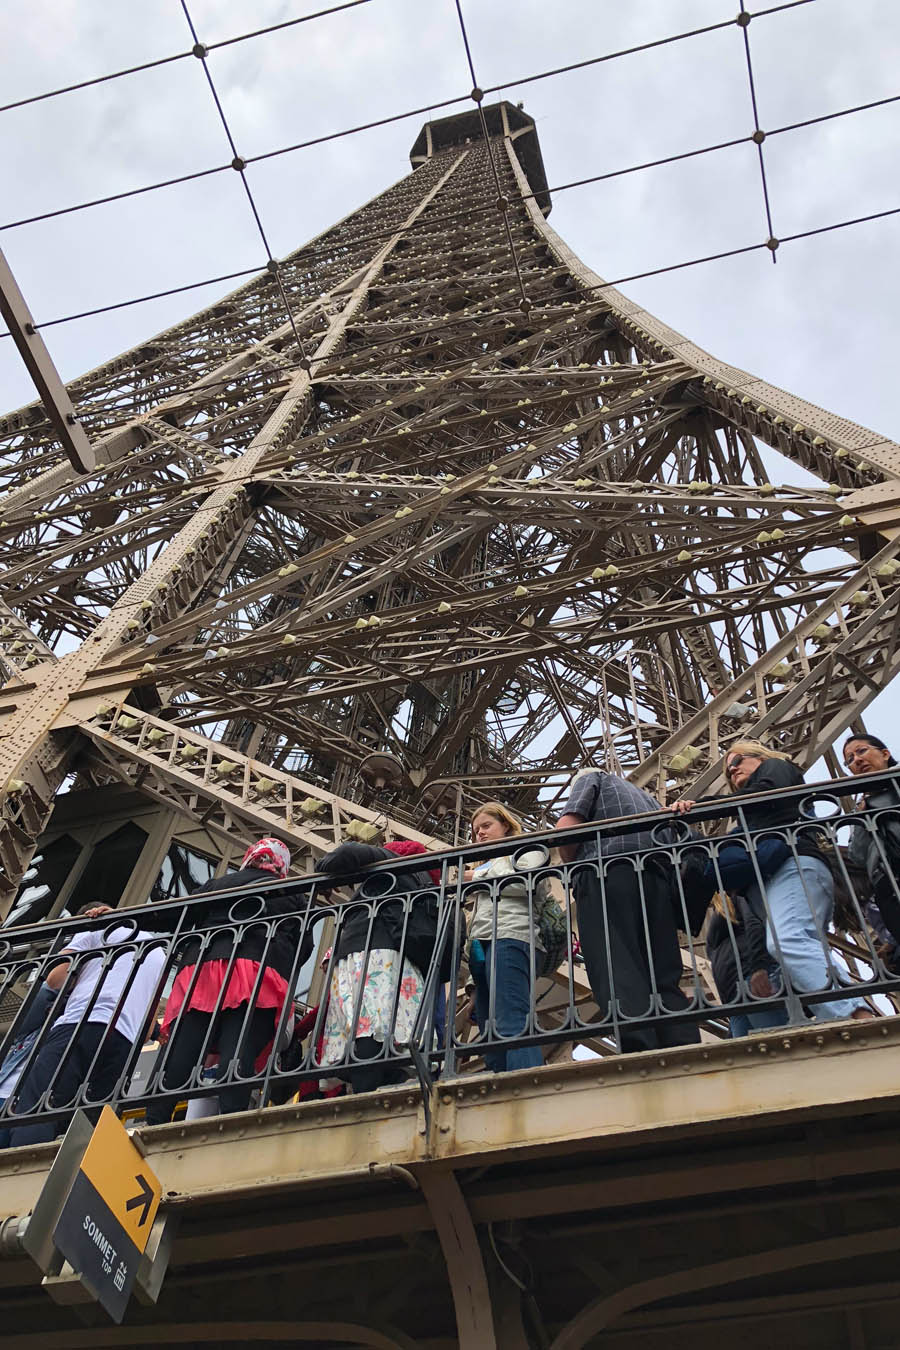 Paris Travel Guide: Top tips for how to visit the top of the Eiffel Tower in Paris France looking up from 2nd second floor